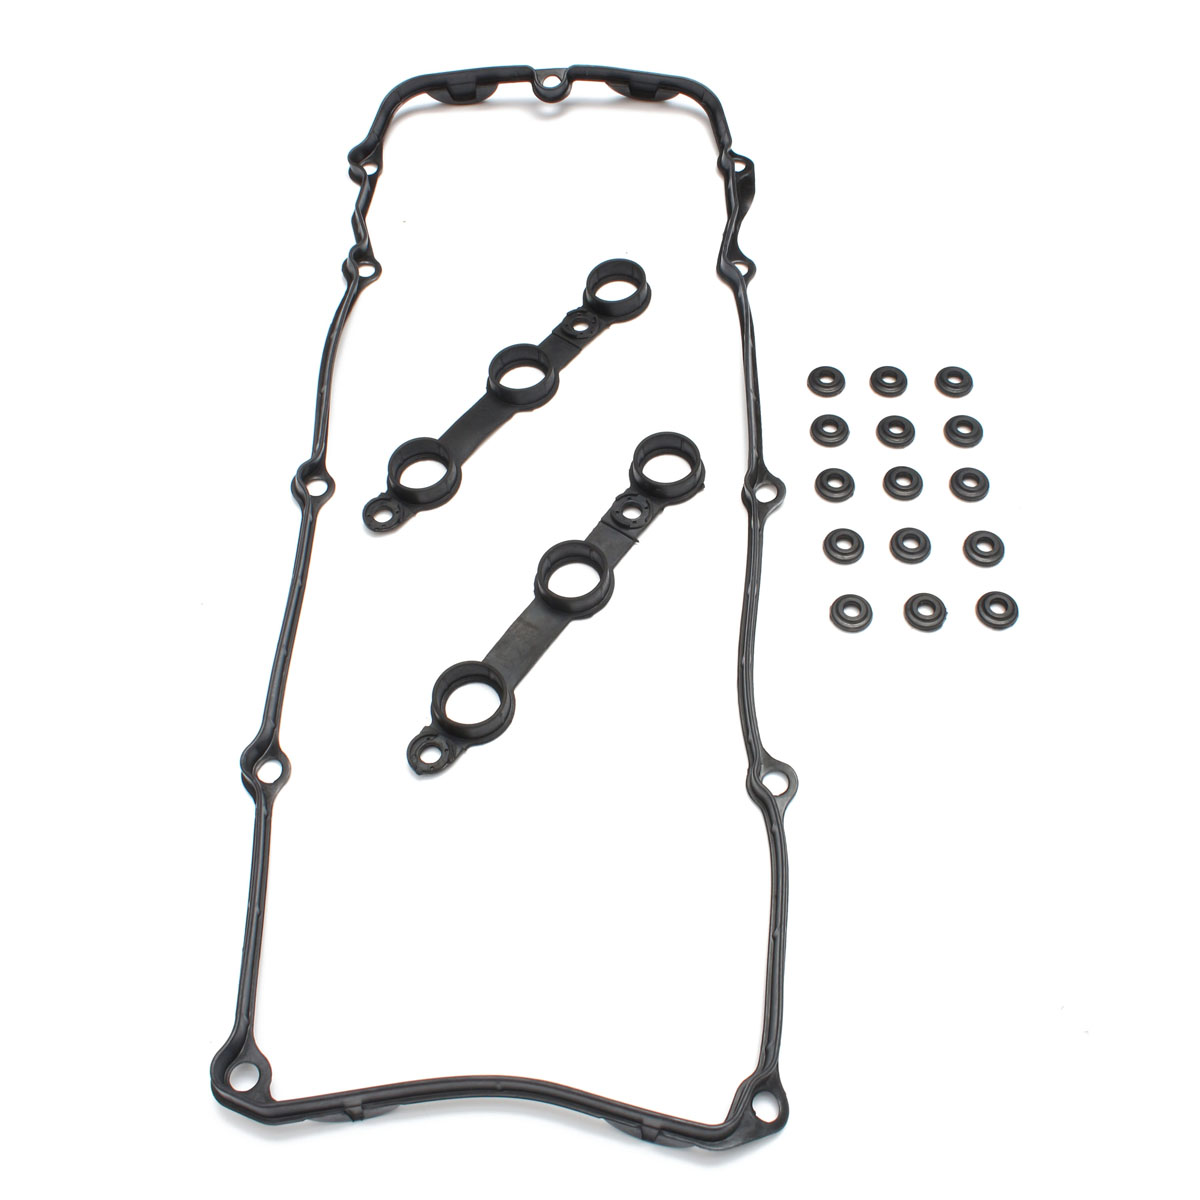 Oil Filter Valve Cover Set Seal Gasket Black For BMW 325